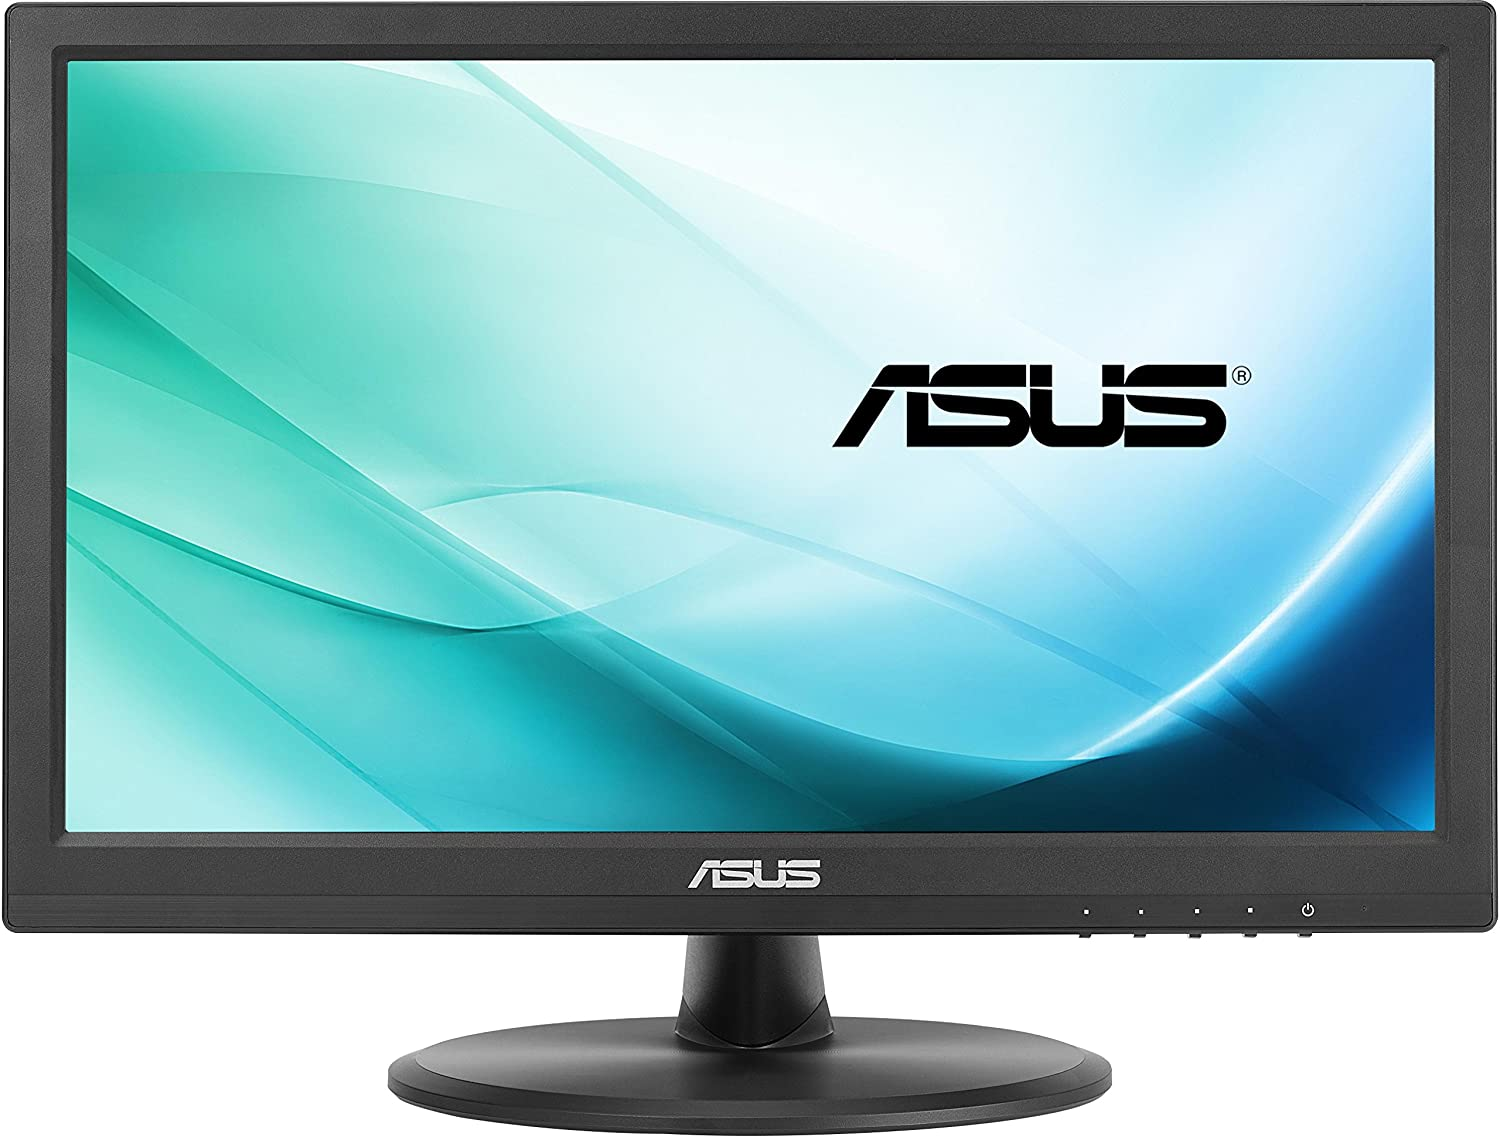 """ASUS VT168N 15.6"""" Monitor, 1366x768, TN, 10-point Touch Monitor, Flicker  free, Low Blue Light, TUV certified: Amazon.co.uk: Computers & Accessories"""